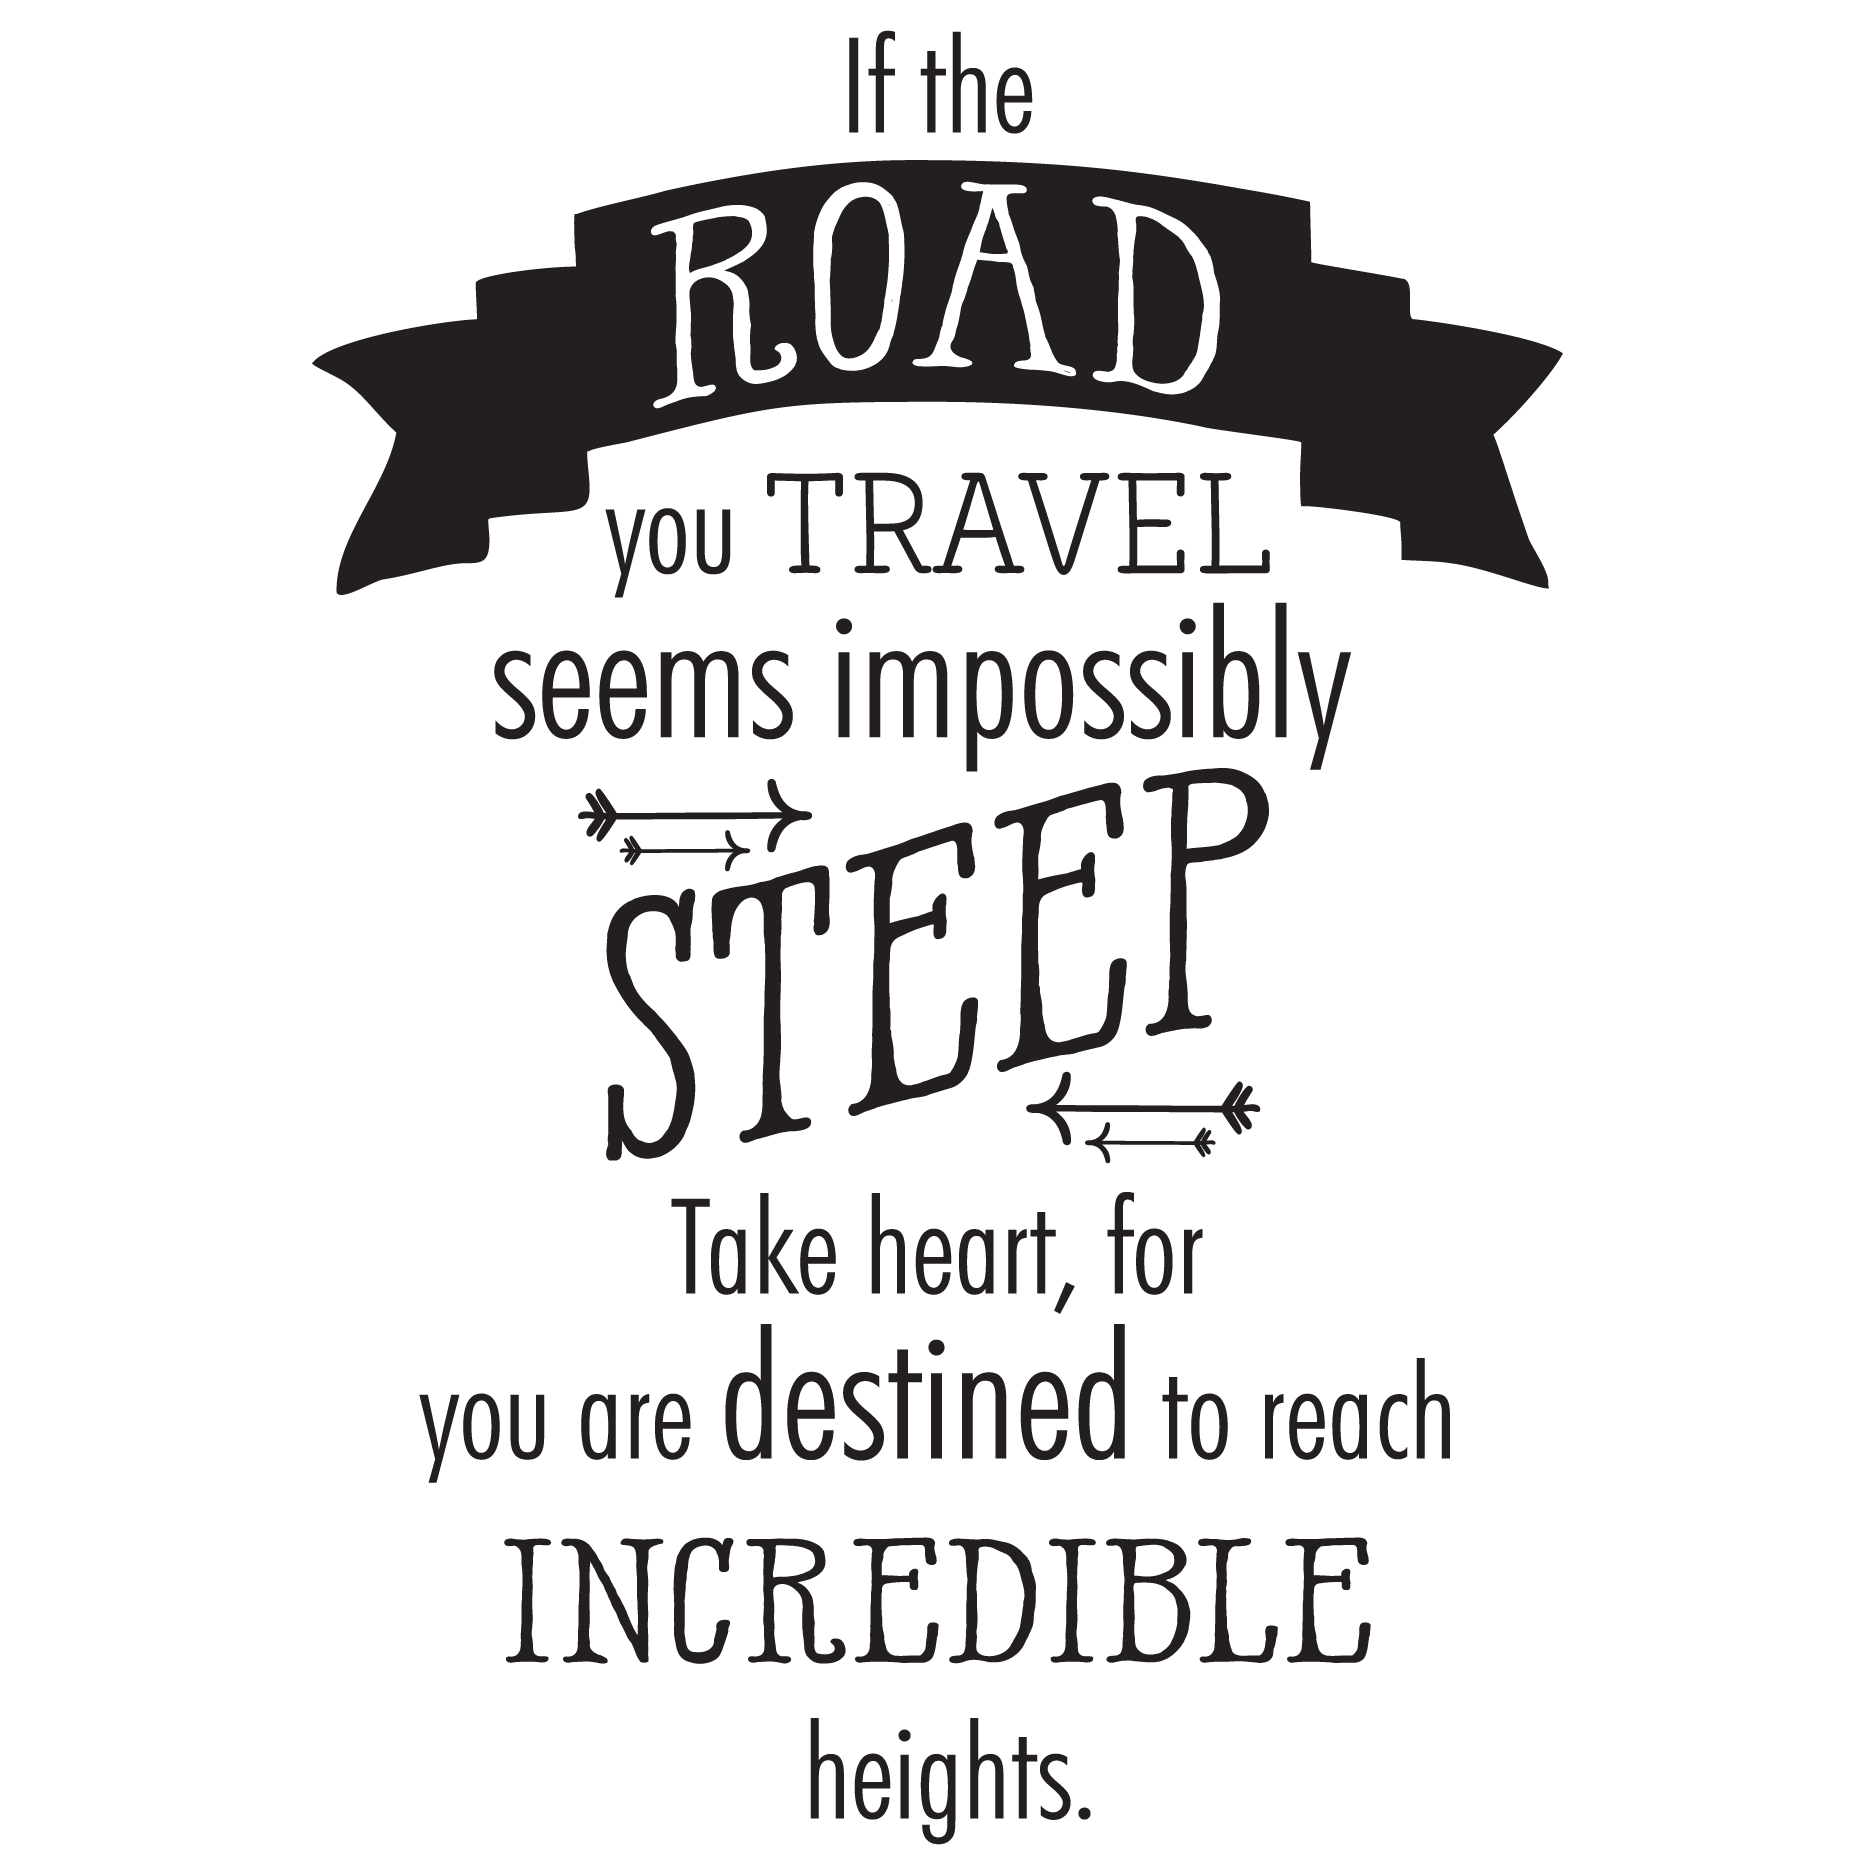 If The Road You Travel Wall Quotes Decal Wallquotescom